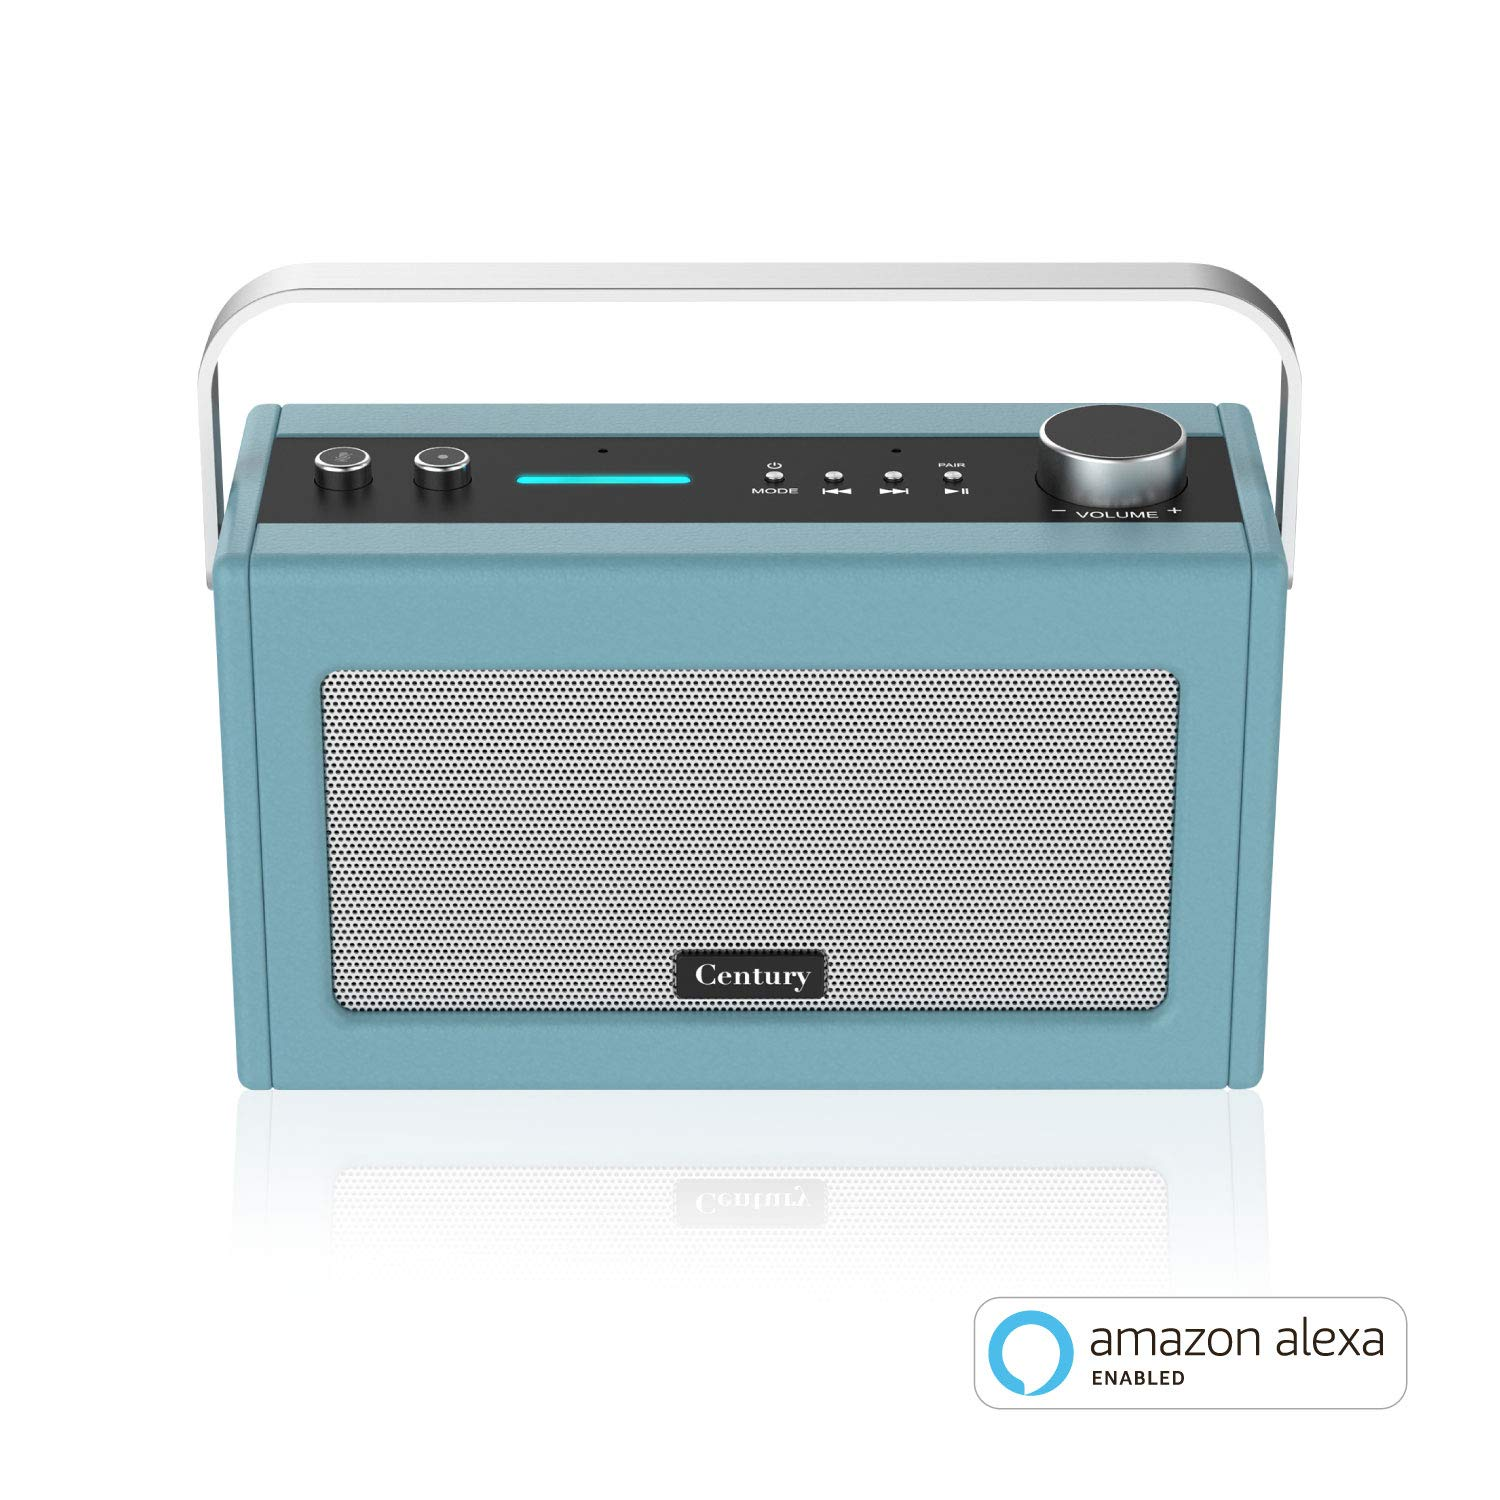 Century Internet Radio | Smart Wi-Fi Speaker with Alexa | Bluetooth | Smart Home Control | Multi-Room | News and Sport Updates (Stone Blue)